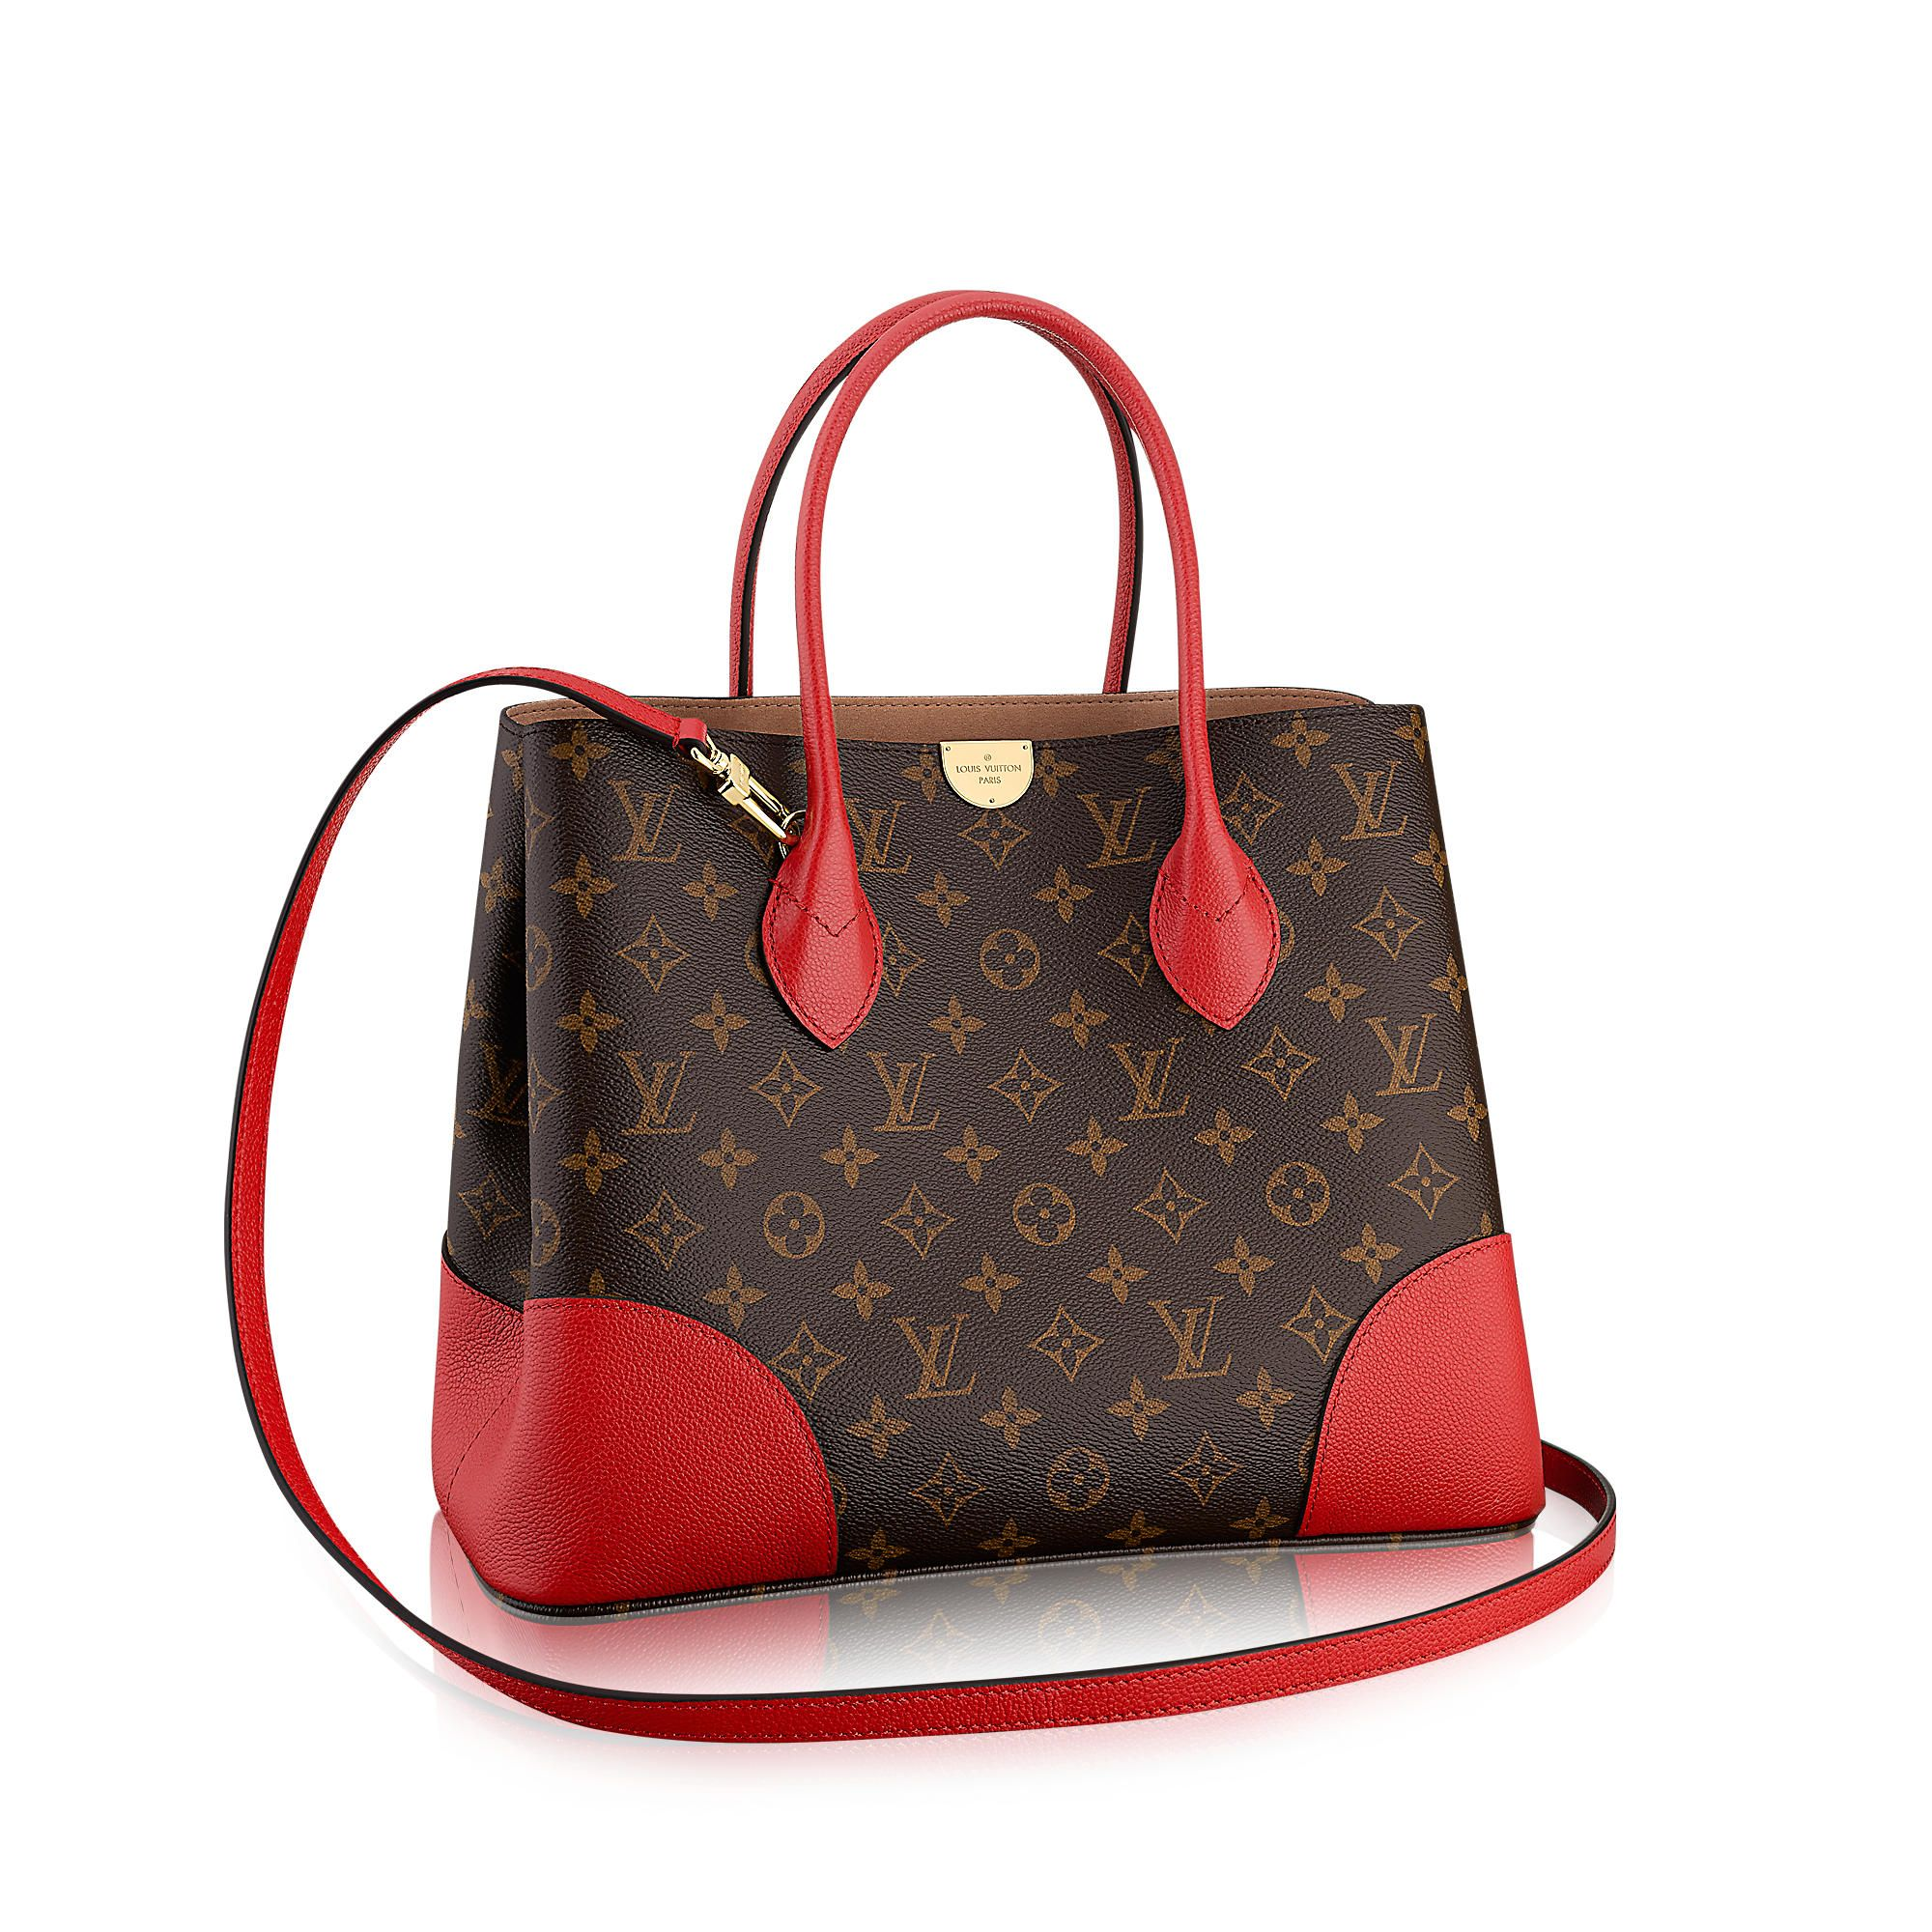 6eb3bc3f06 Celine appeals to pro users like the business staffs or the top executive.  The design of this popular bag normally have cornered and rigid look to it  that ...